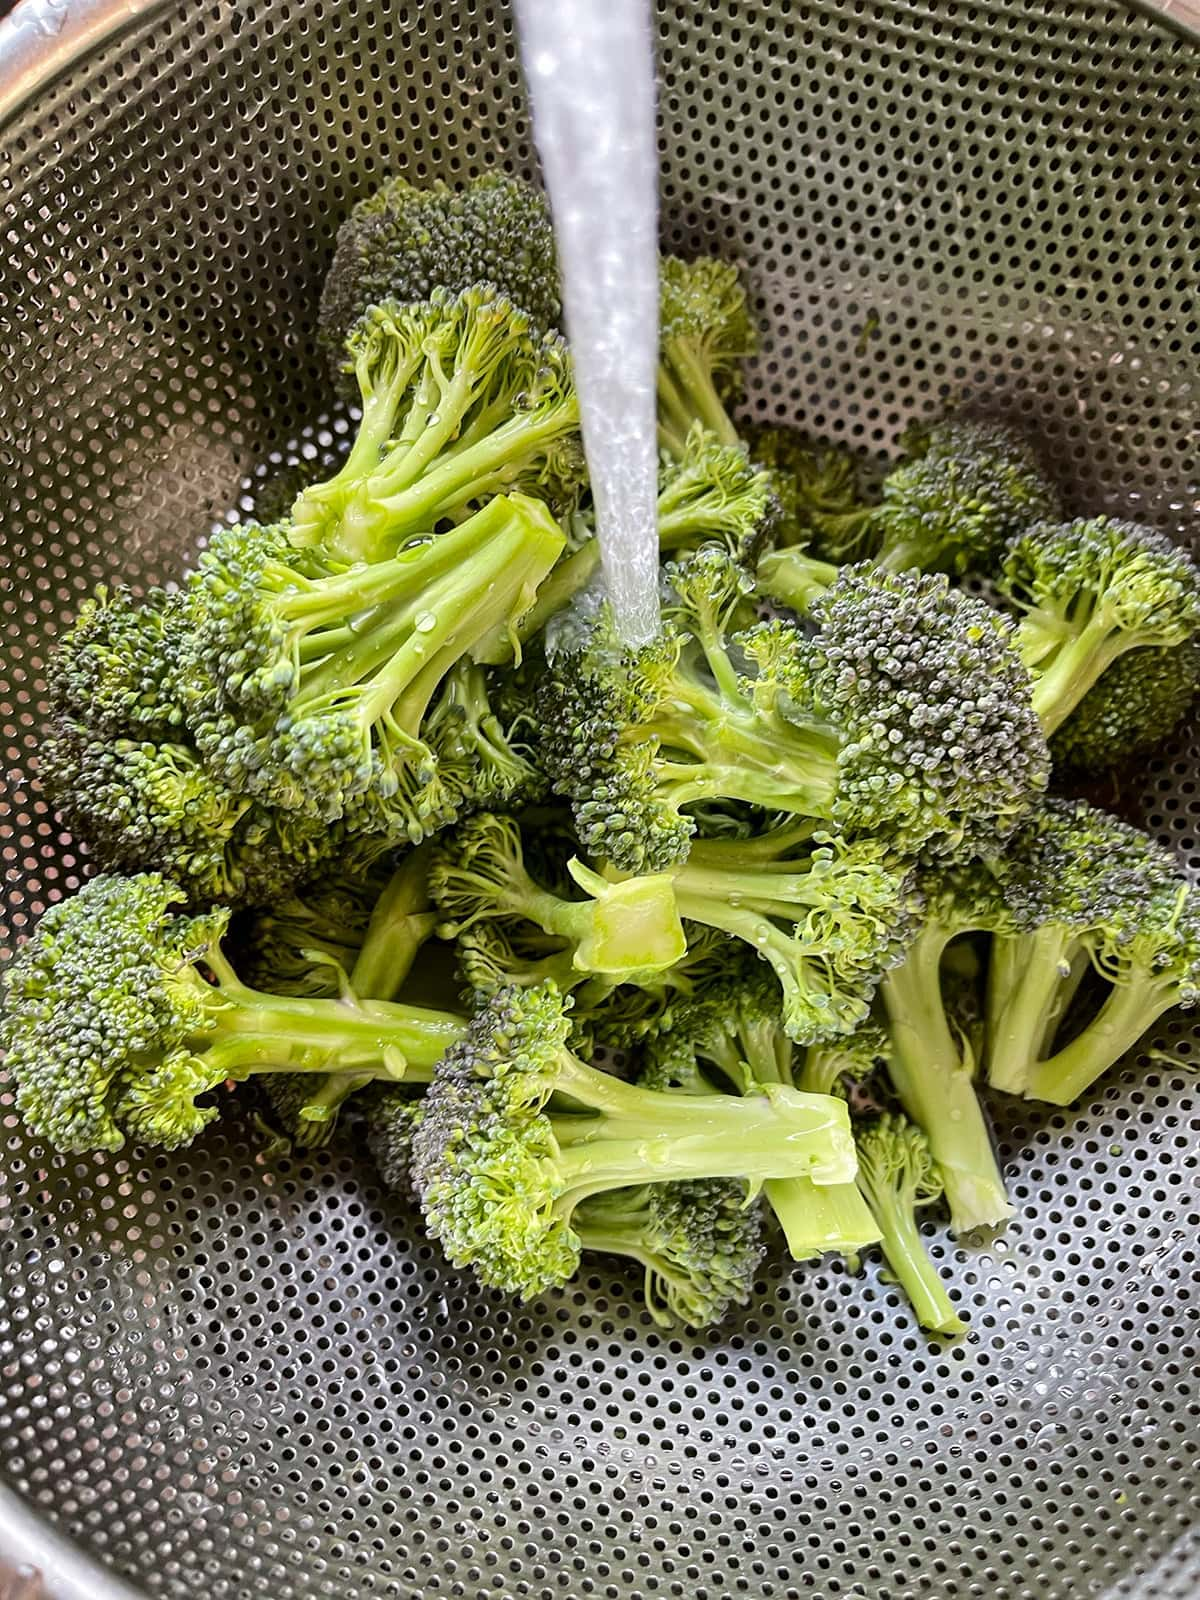 broccoli florets being washed